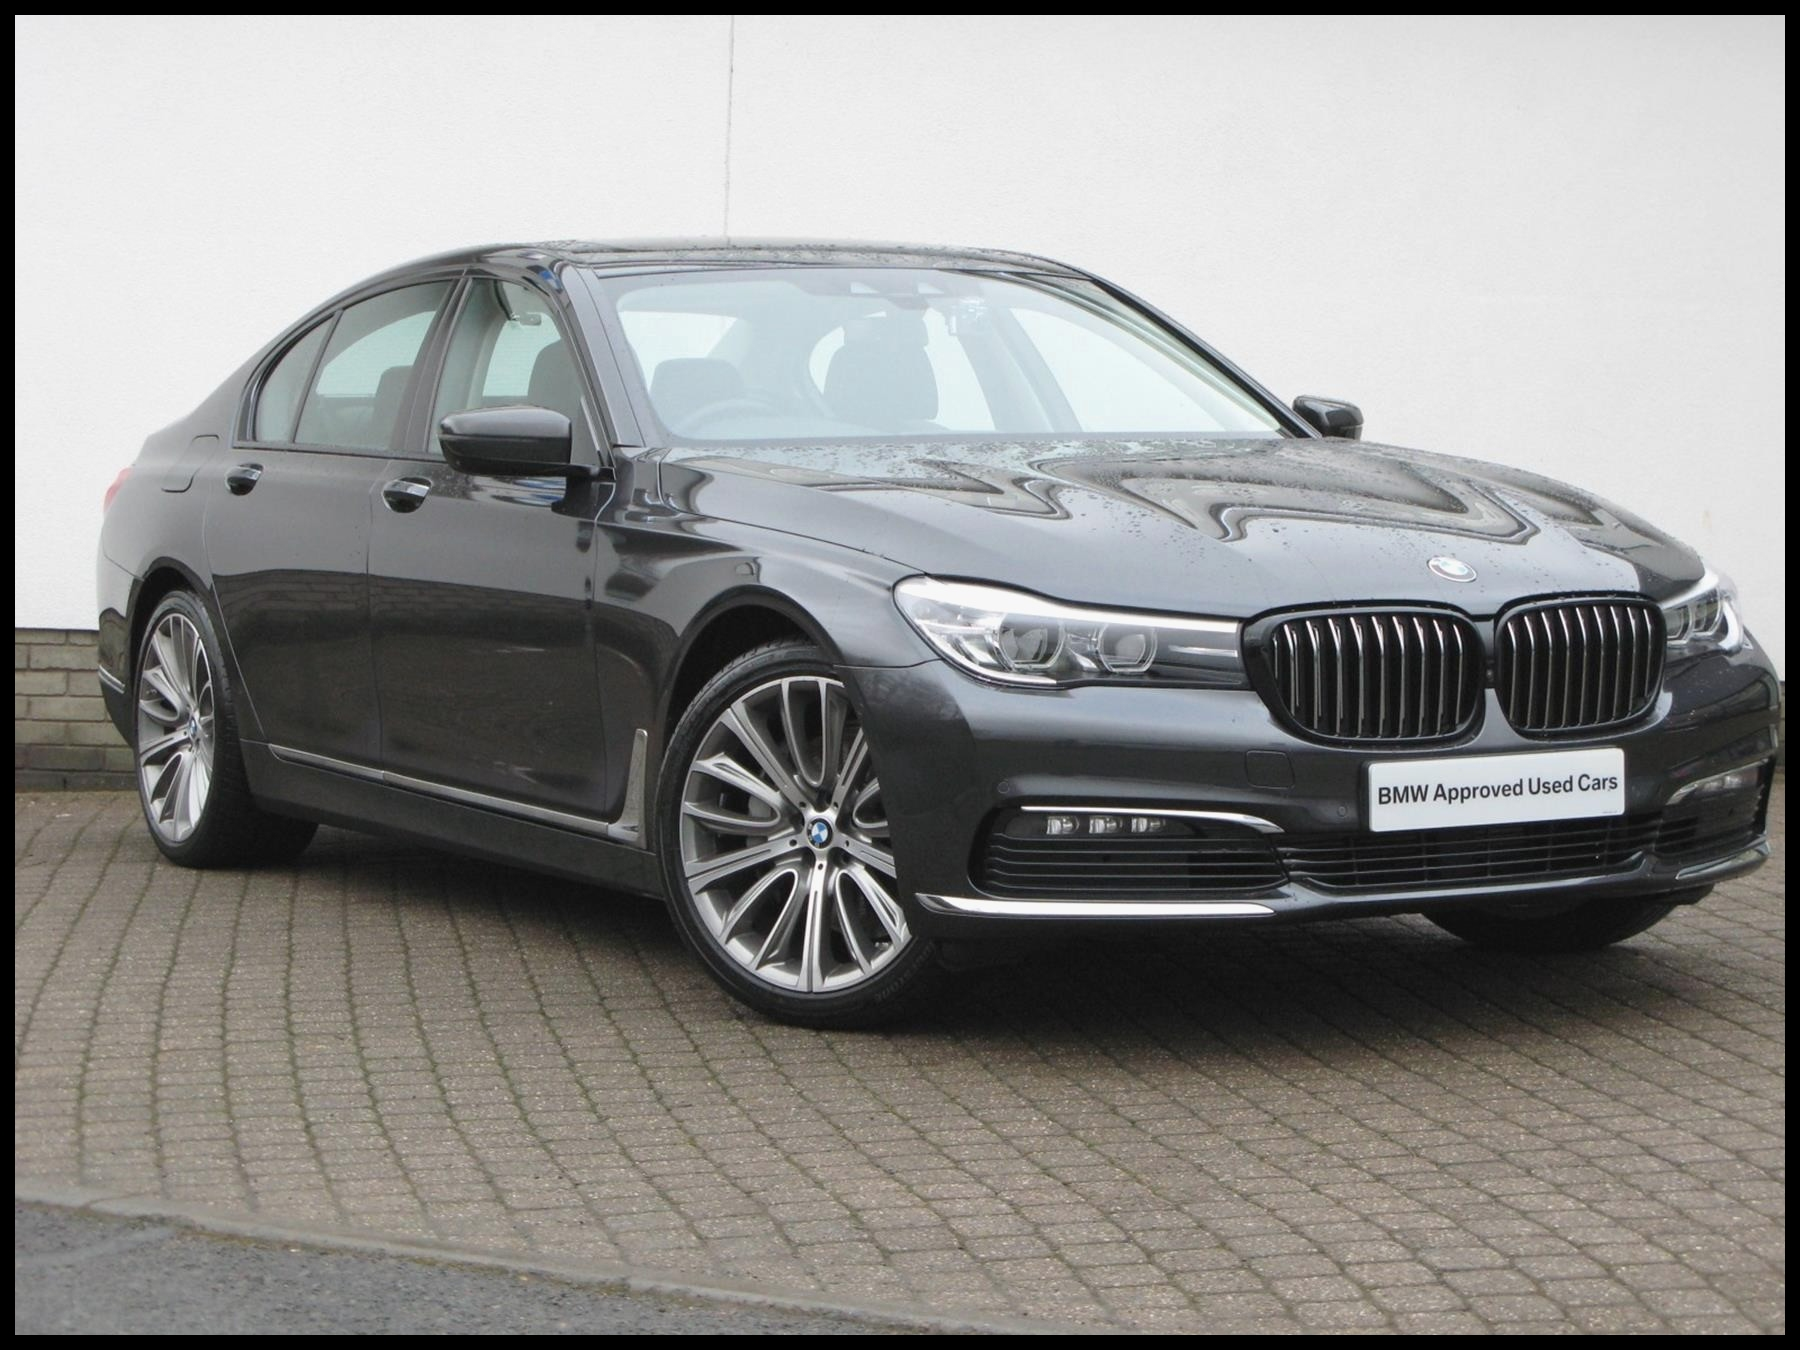 Exciting Bmw 750i Xdrive Bmw 7 Series for Sale